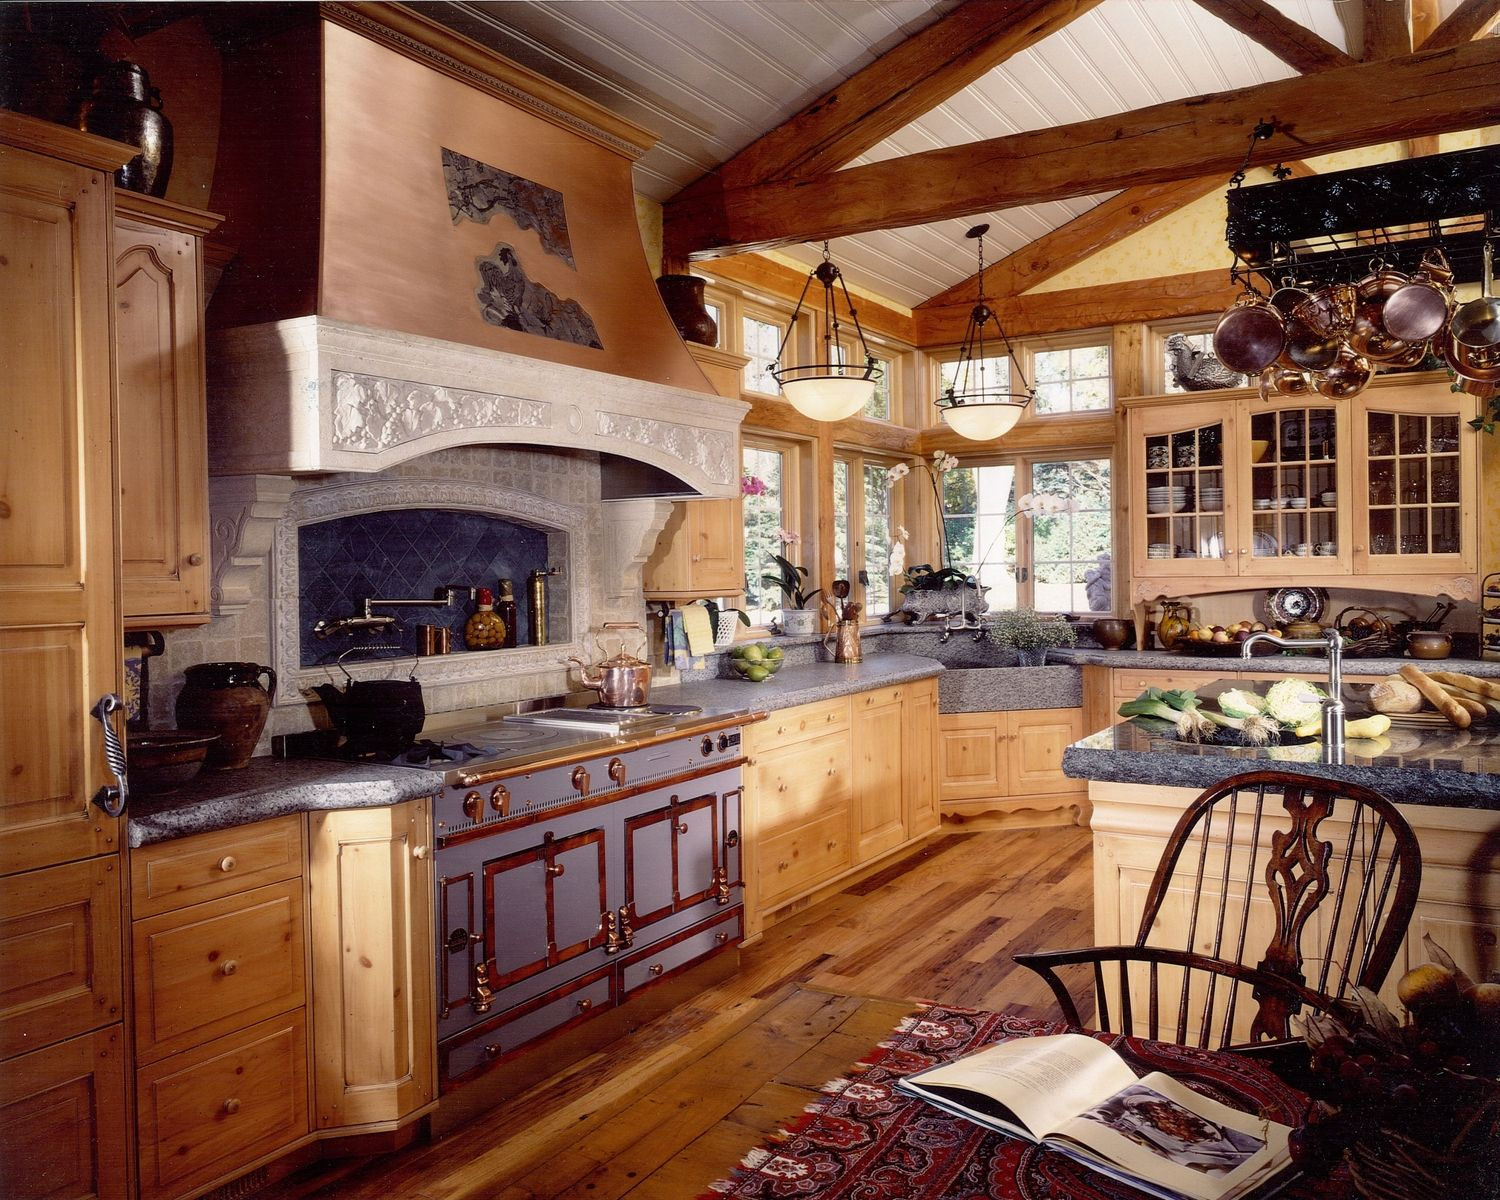 French Country Kitchen Remodel Of Wood Stone Finally A French Inspired Kitchen In So Country Cottage Kitchen Simple Kitchen Remodel Country Kitchen Designs